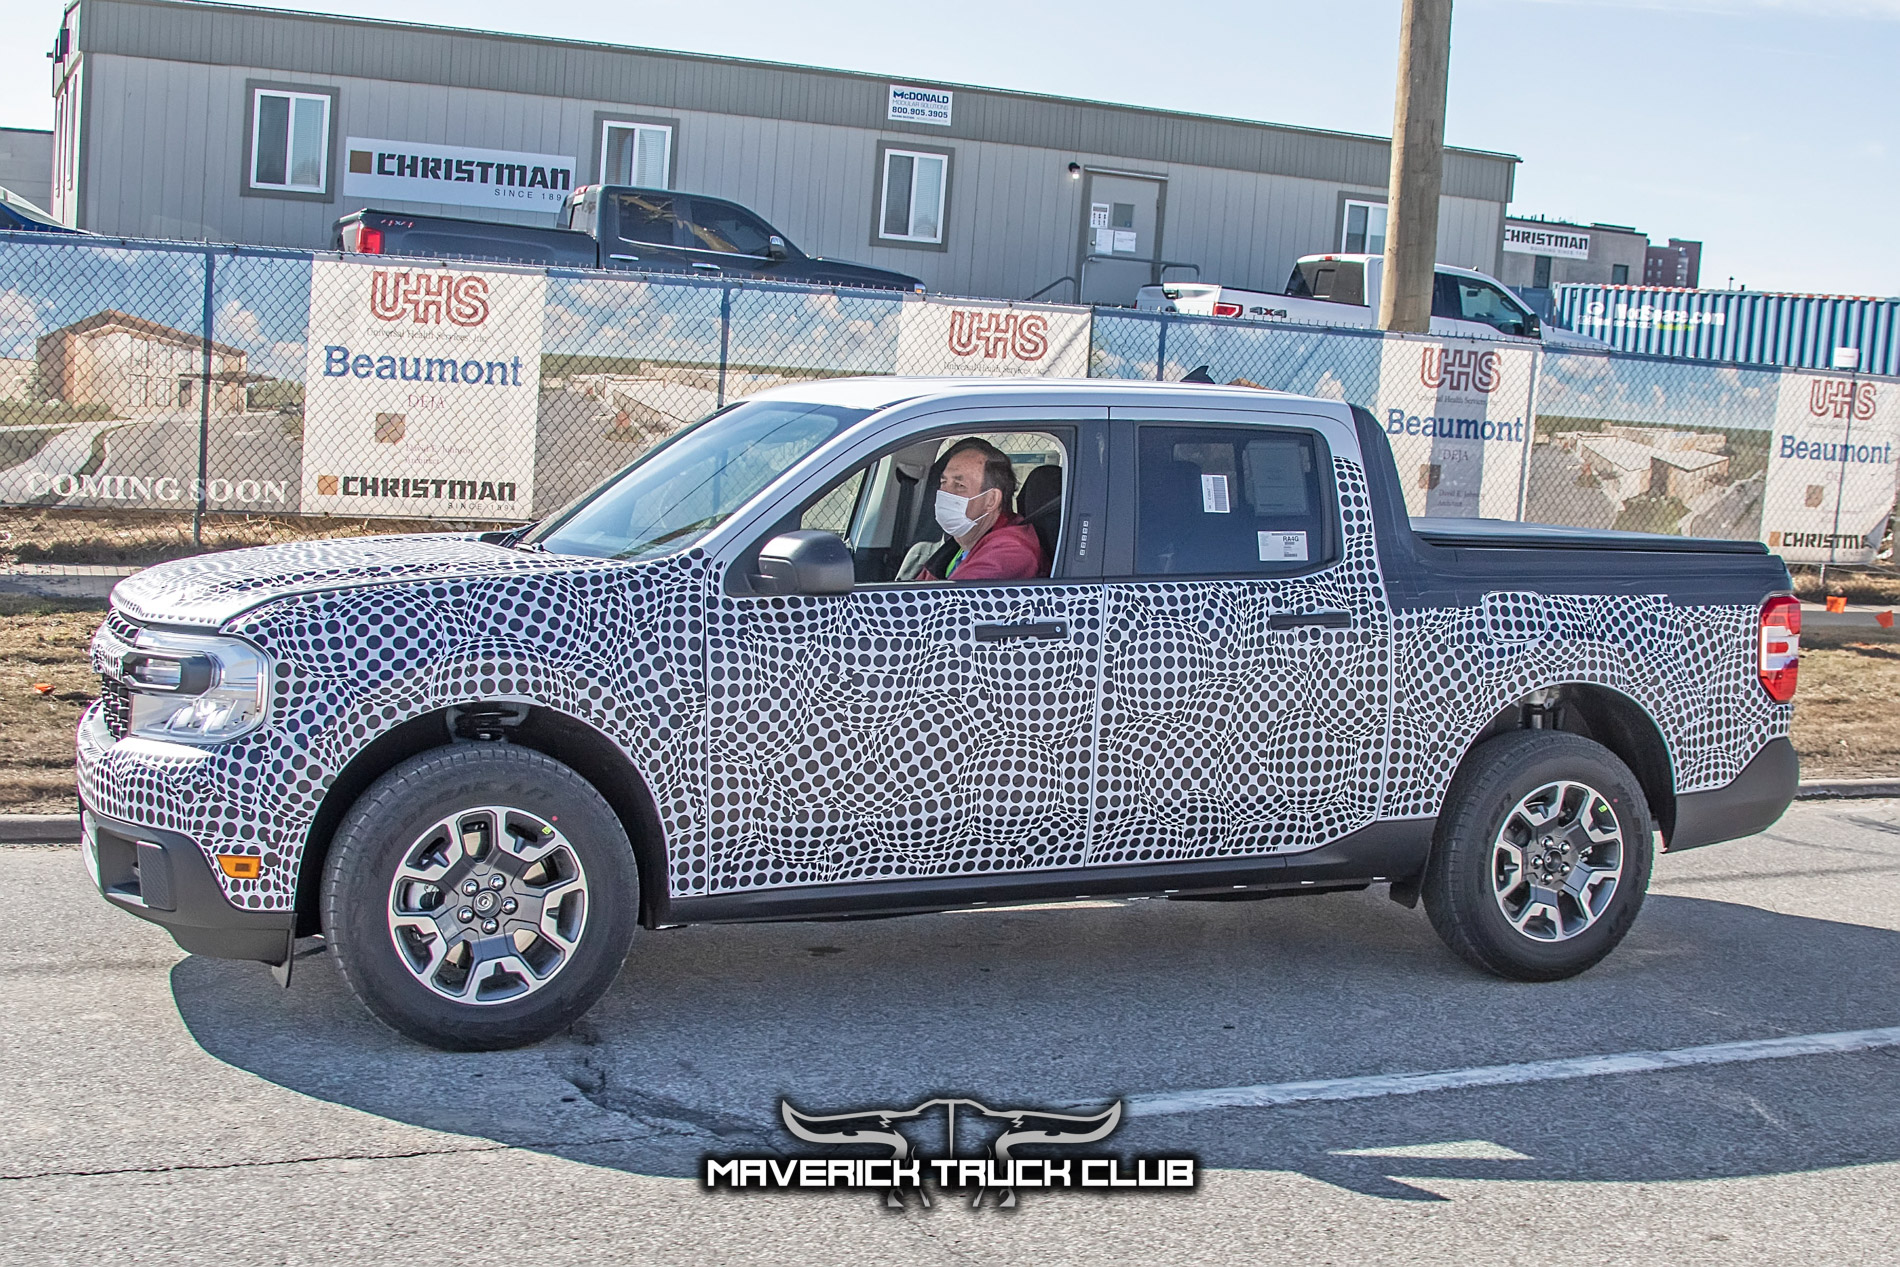 2022 Ford Maverick Pickup Spied 10.jpg